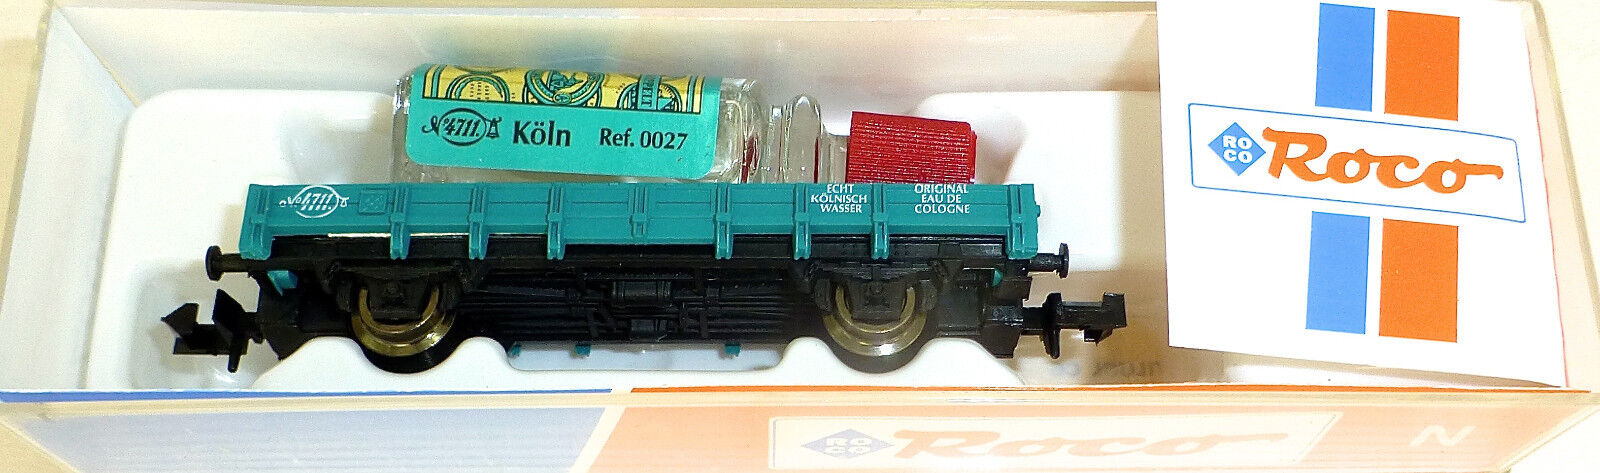 Car without Shores 4711 Real Cologne Loaded Roco 25927 N 1 160